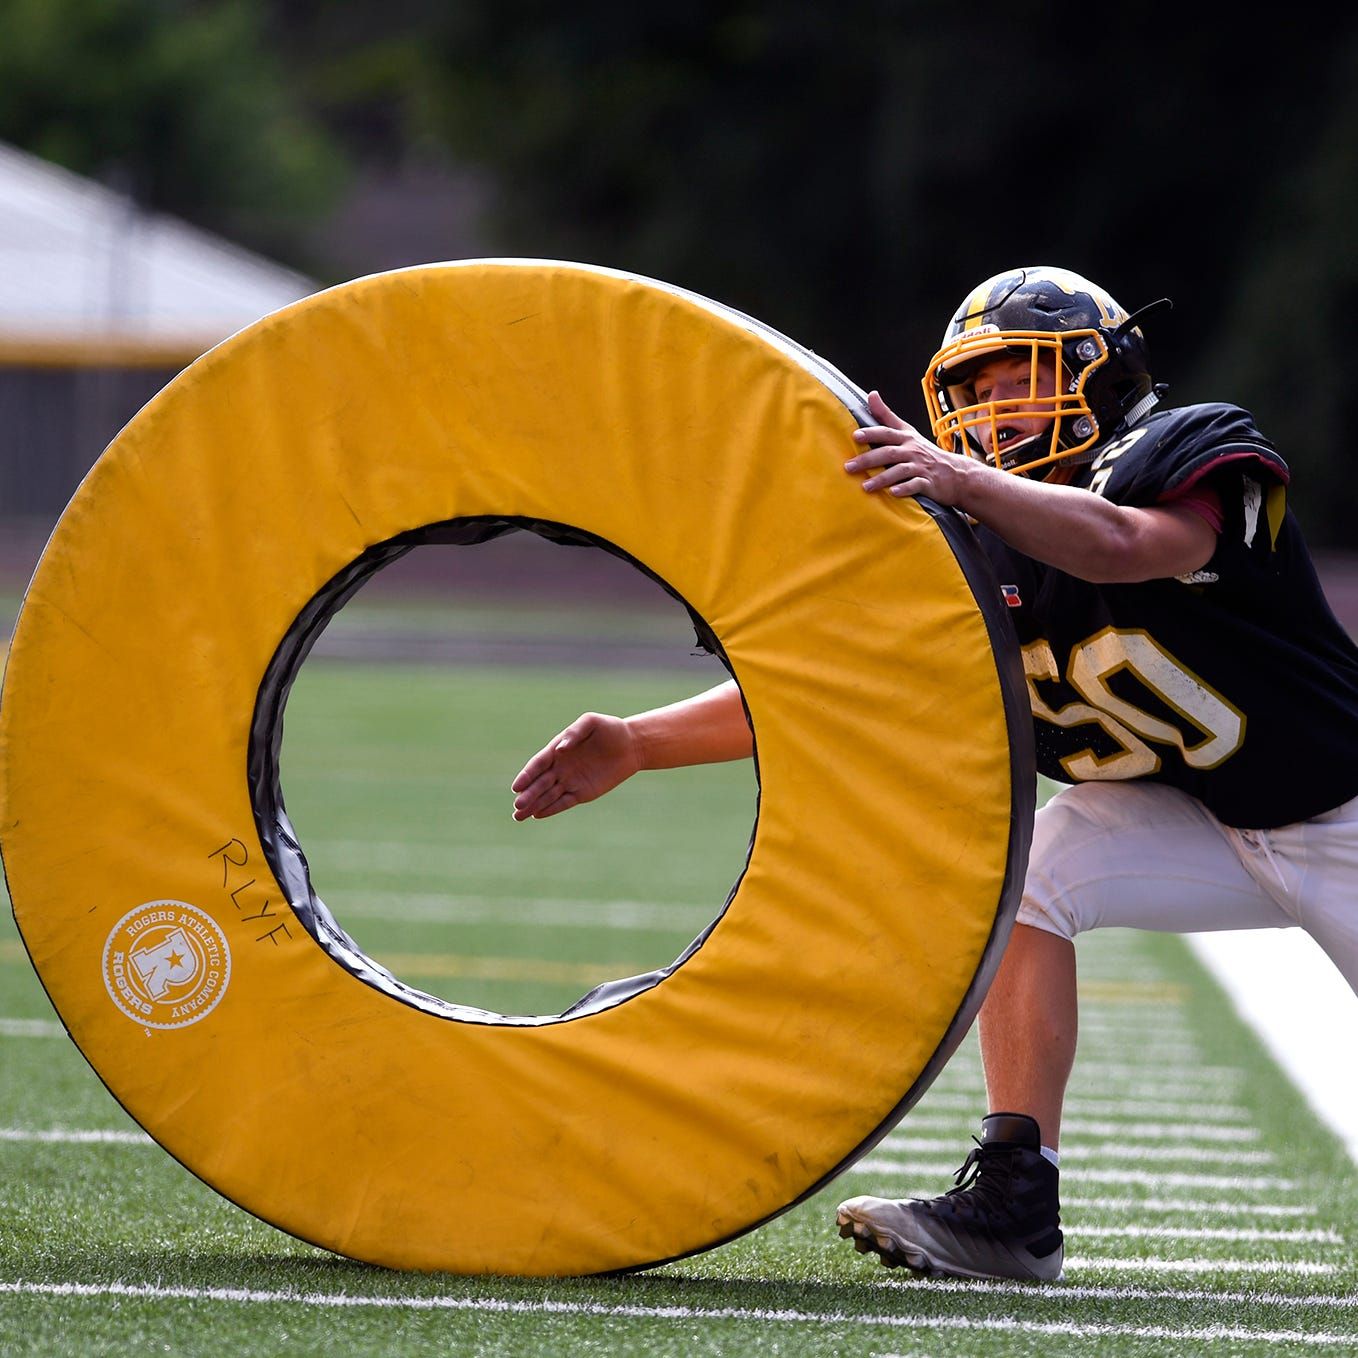 Red Lion High School football team prepares for season with altered schedule, new QB